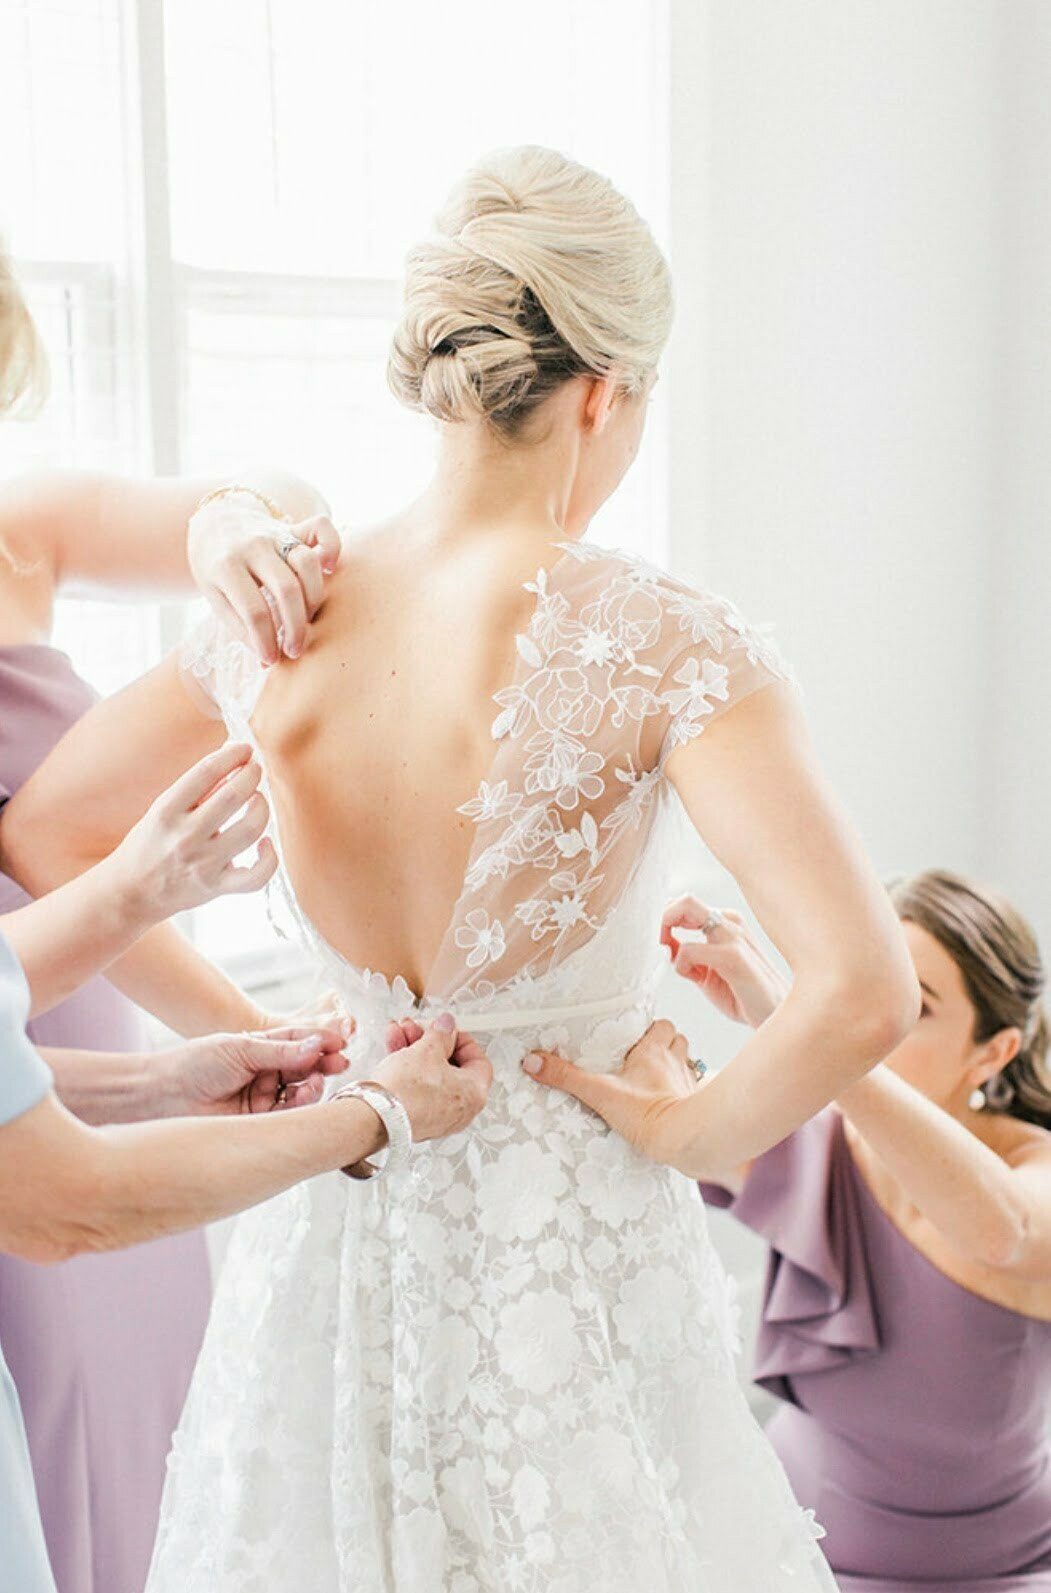 The best version of yourself, Meredith Mira bride intimate wedding